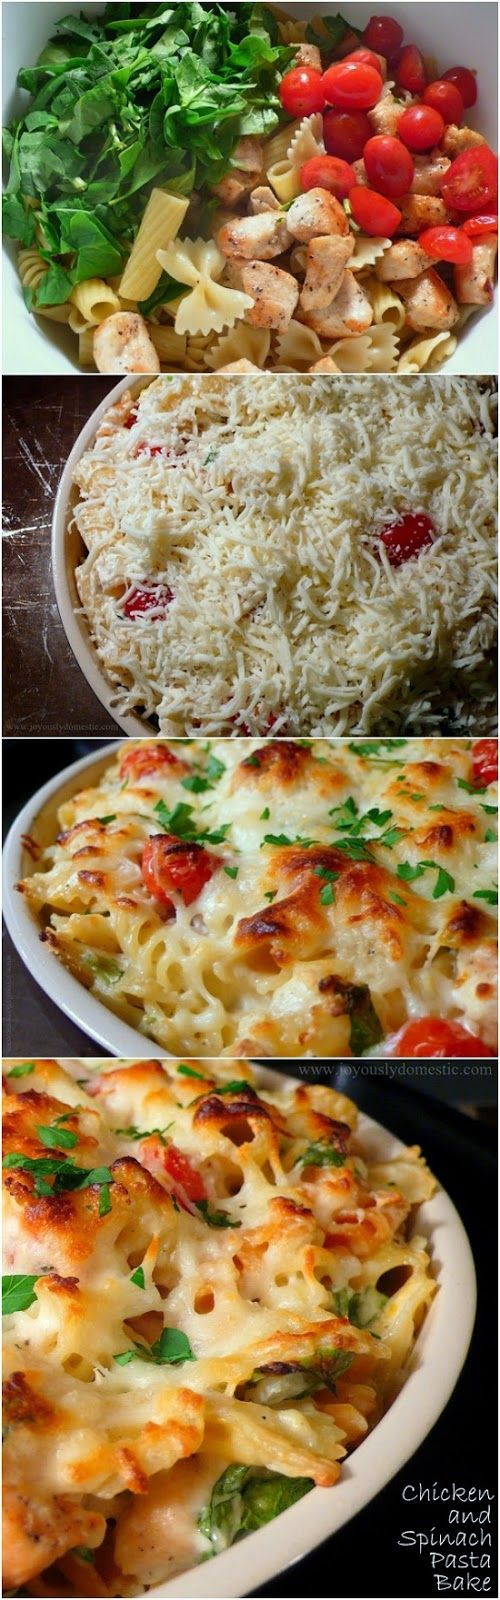 Inspiring snaps: Chicken and Spinach Pasta Bake